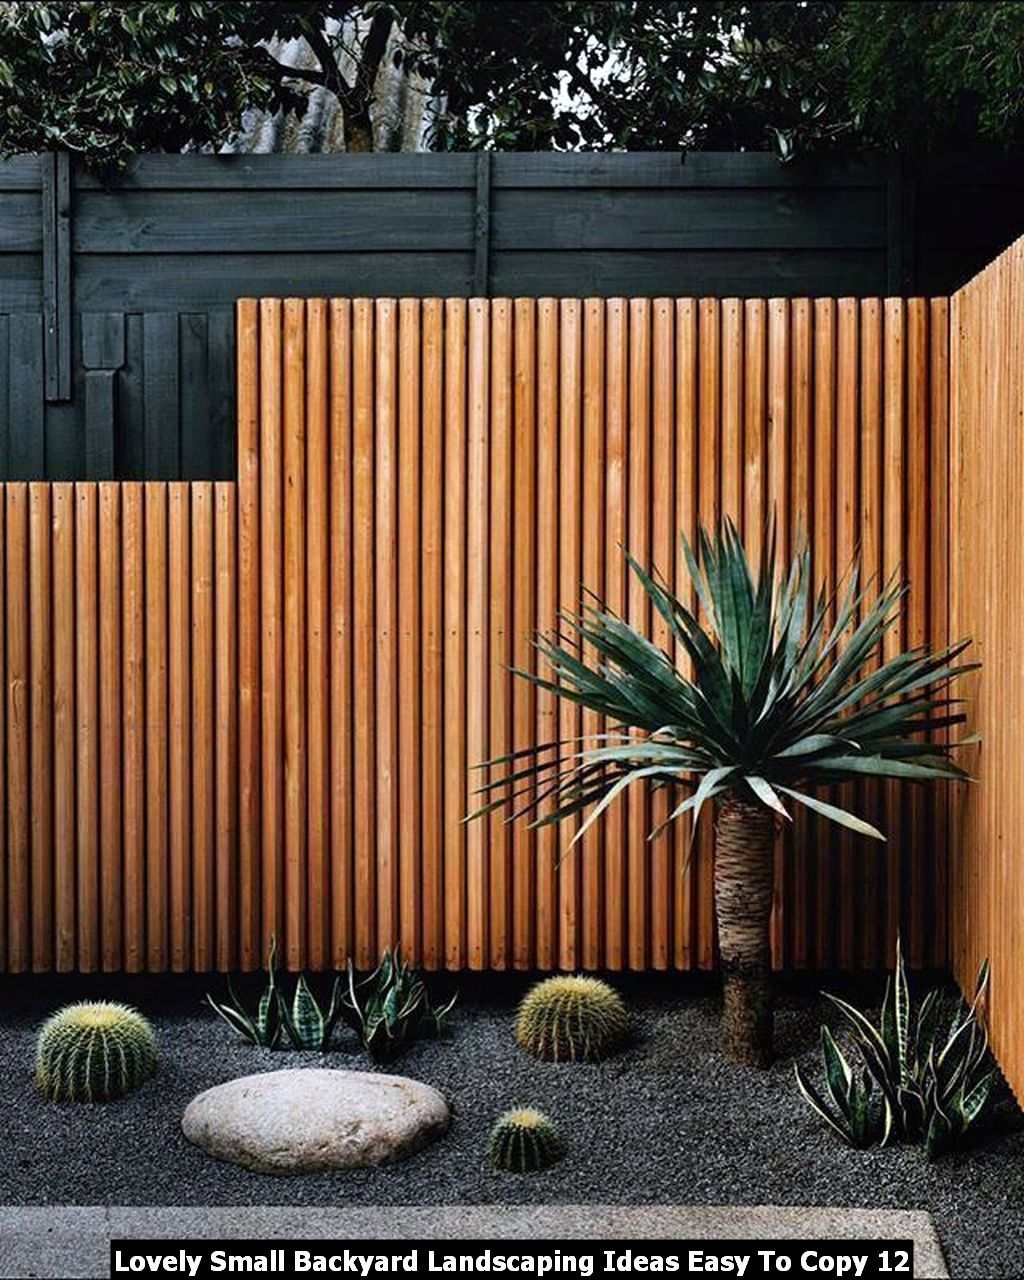 Lovely Small Backyard Landscaping Ideas Easy To Copy 12